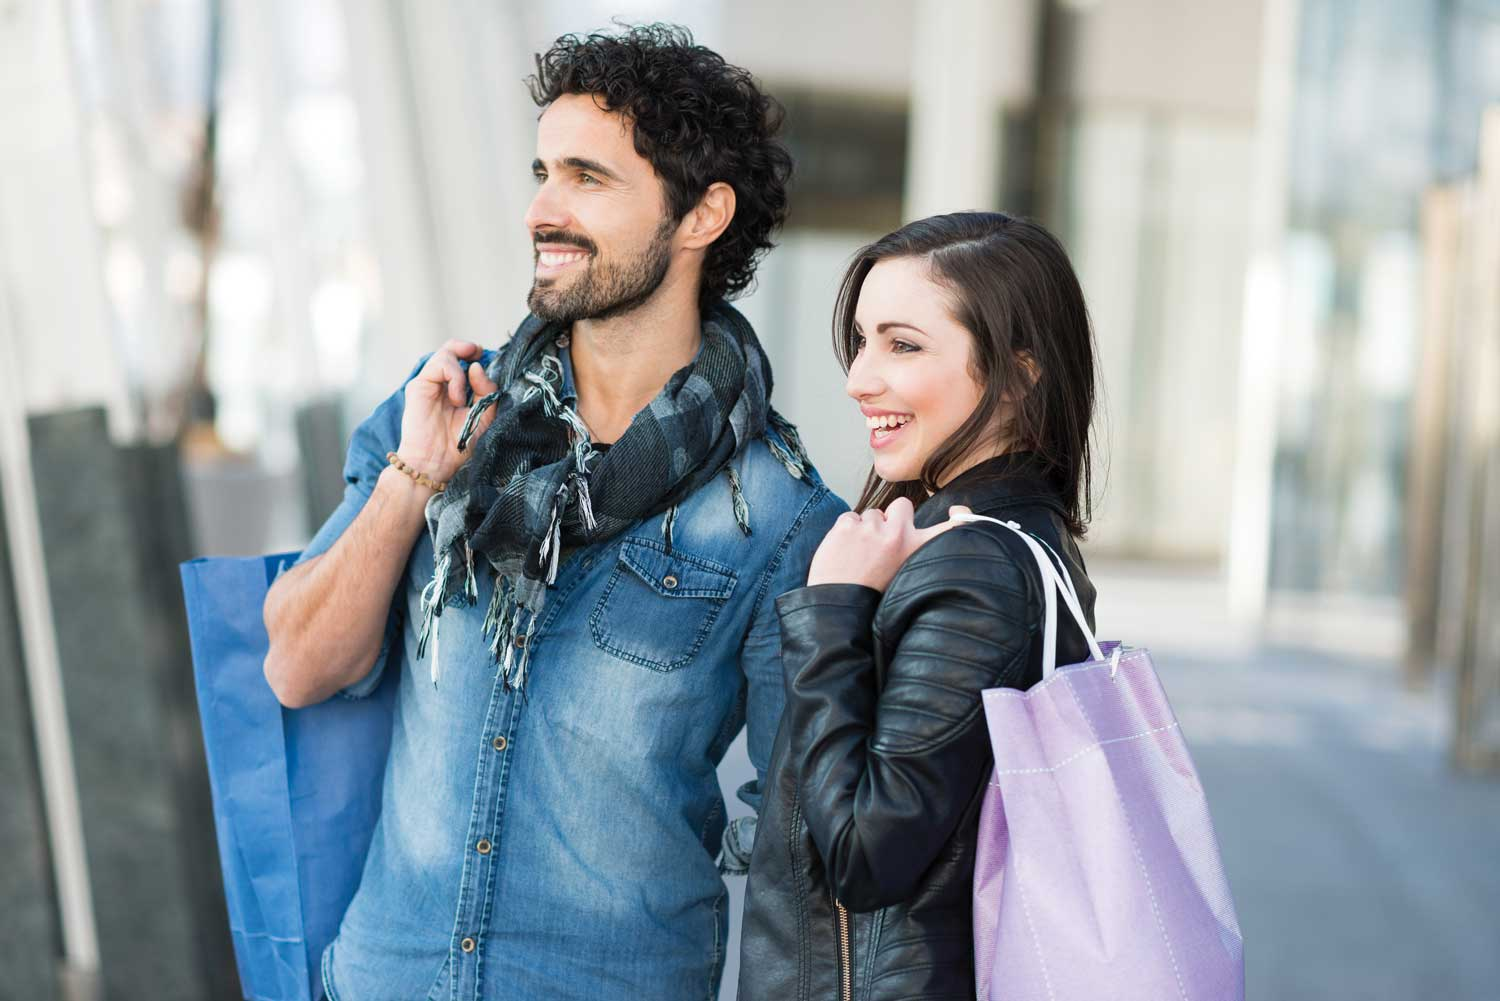 Young, hip heterosexual couple shopping outdoors, both holding shopping bags